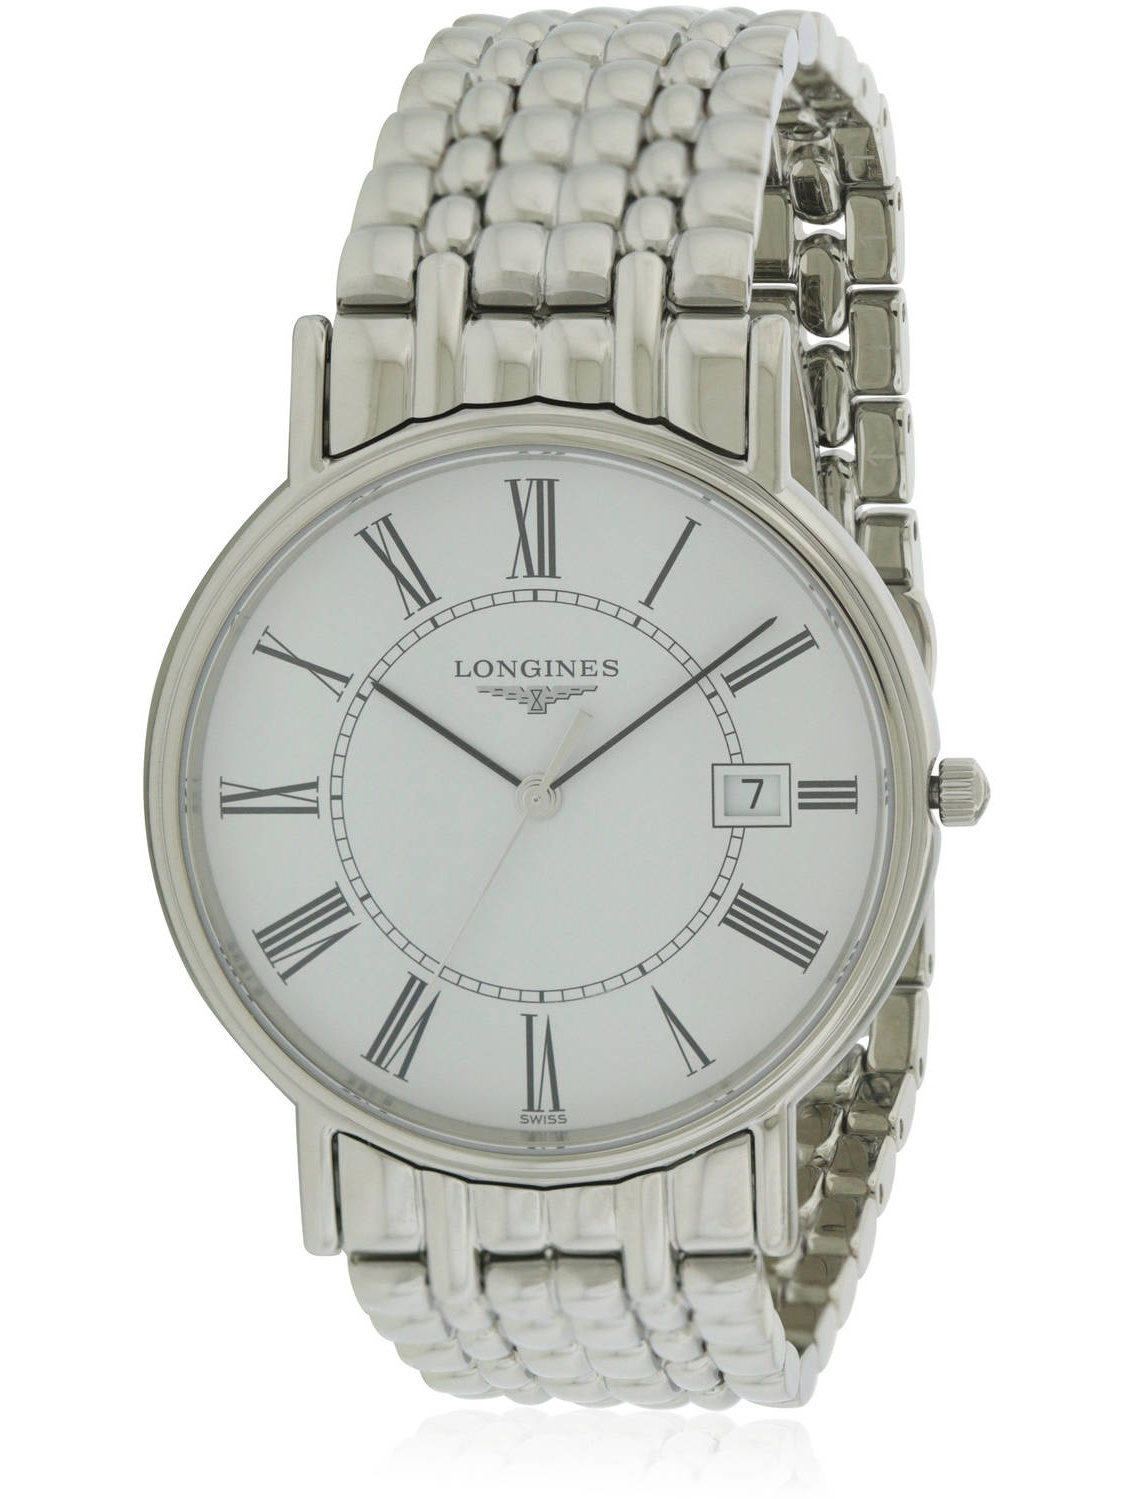 Longines La Grande Classique Presence Stainless Steel Men's Watch, L47904116